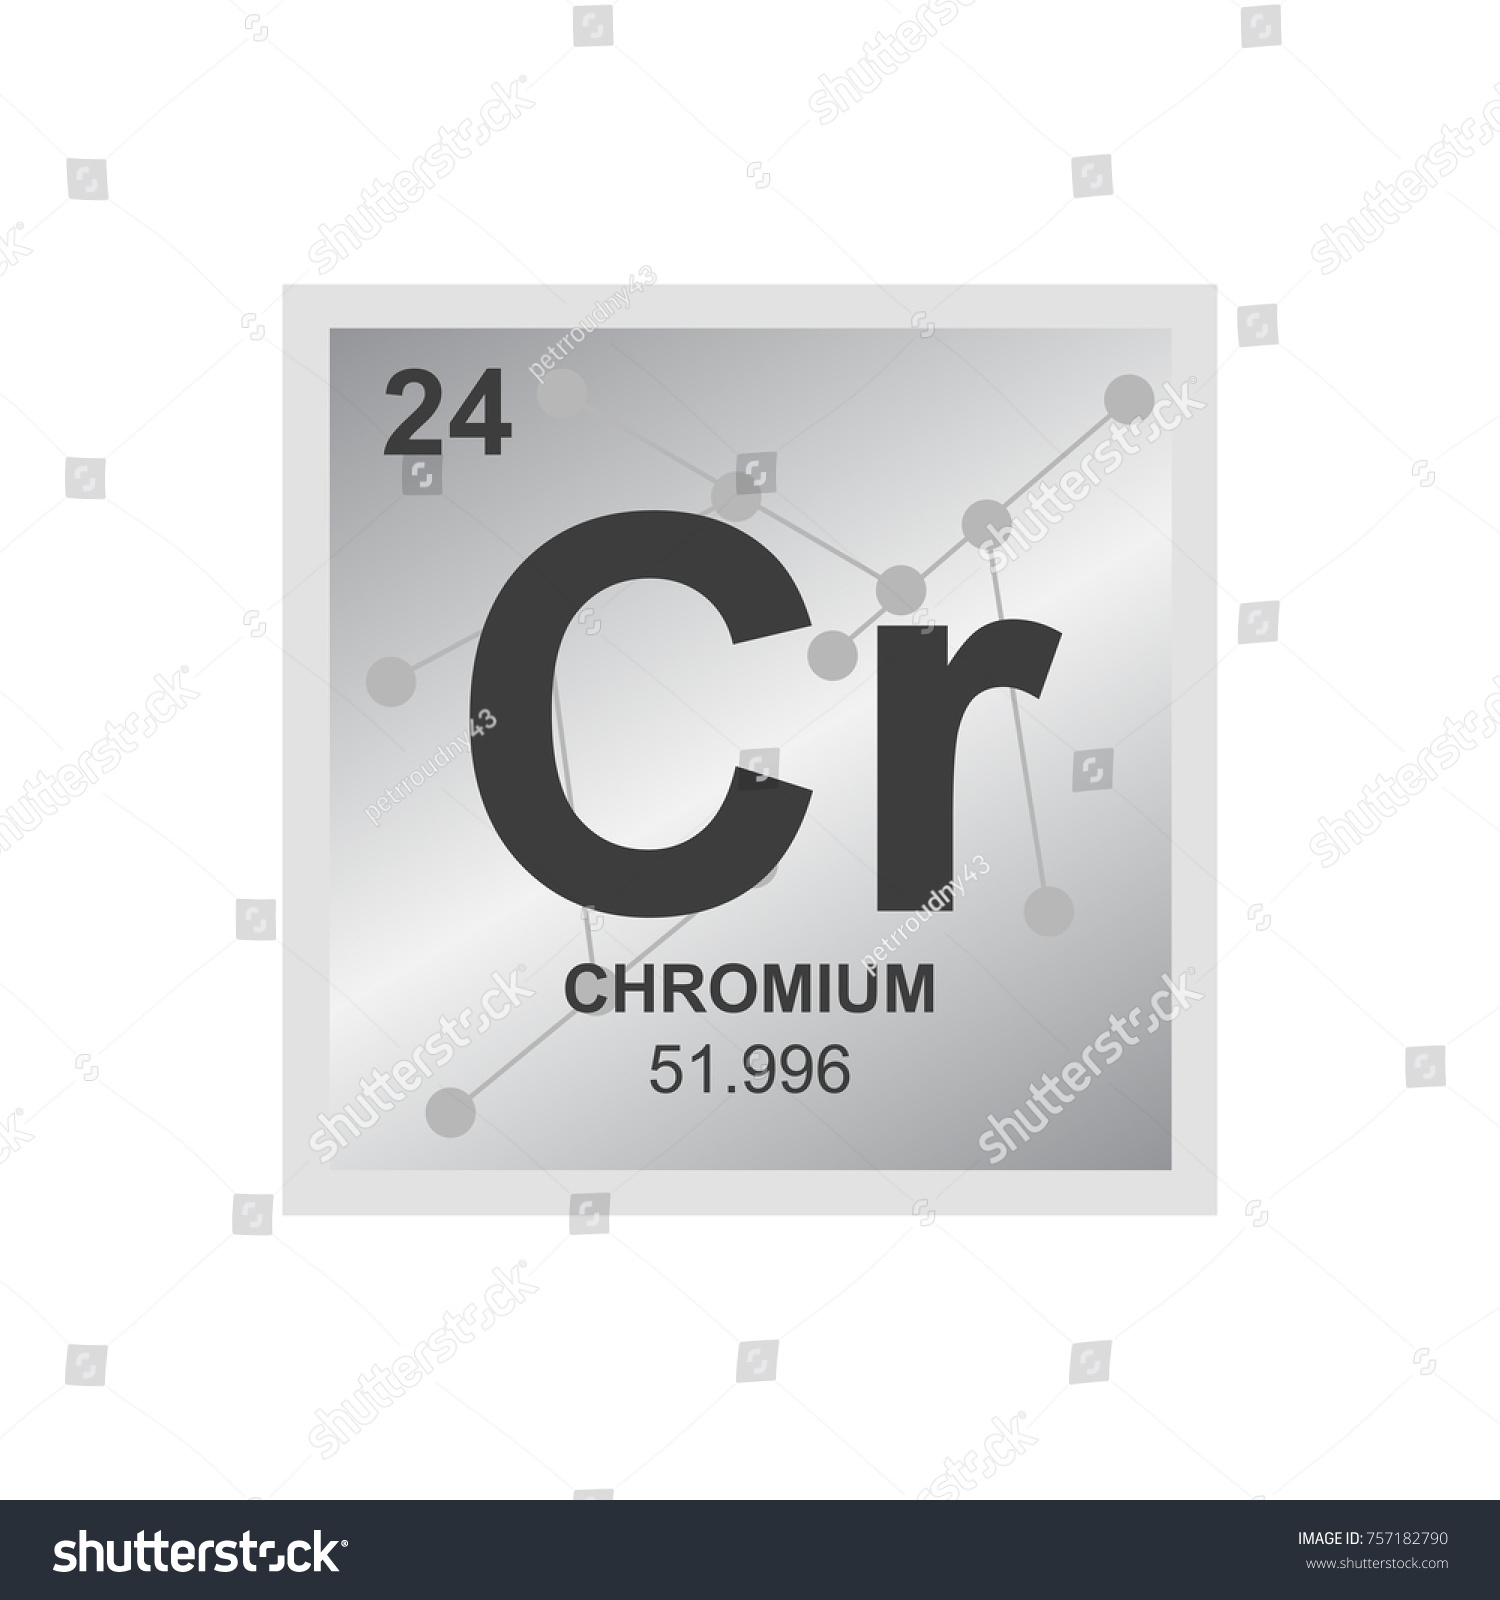 Vector symbol chrome periodic table elements stock vector vector symbol of chrome from the periodic table of the elements on the background from connected urtaz Image collections